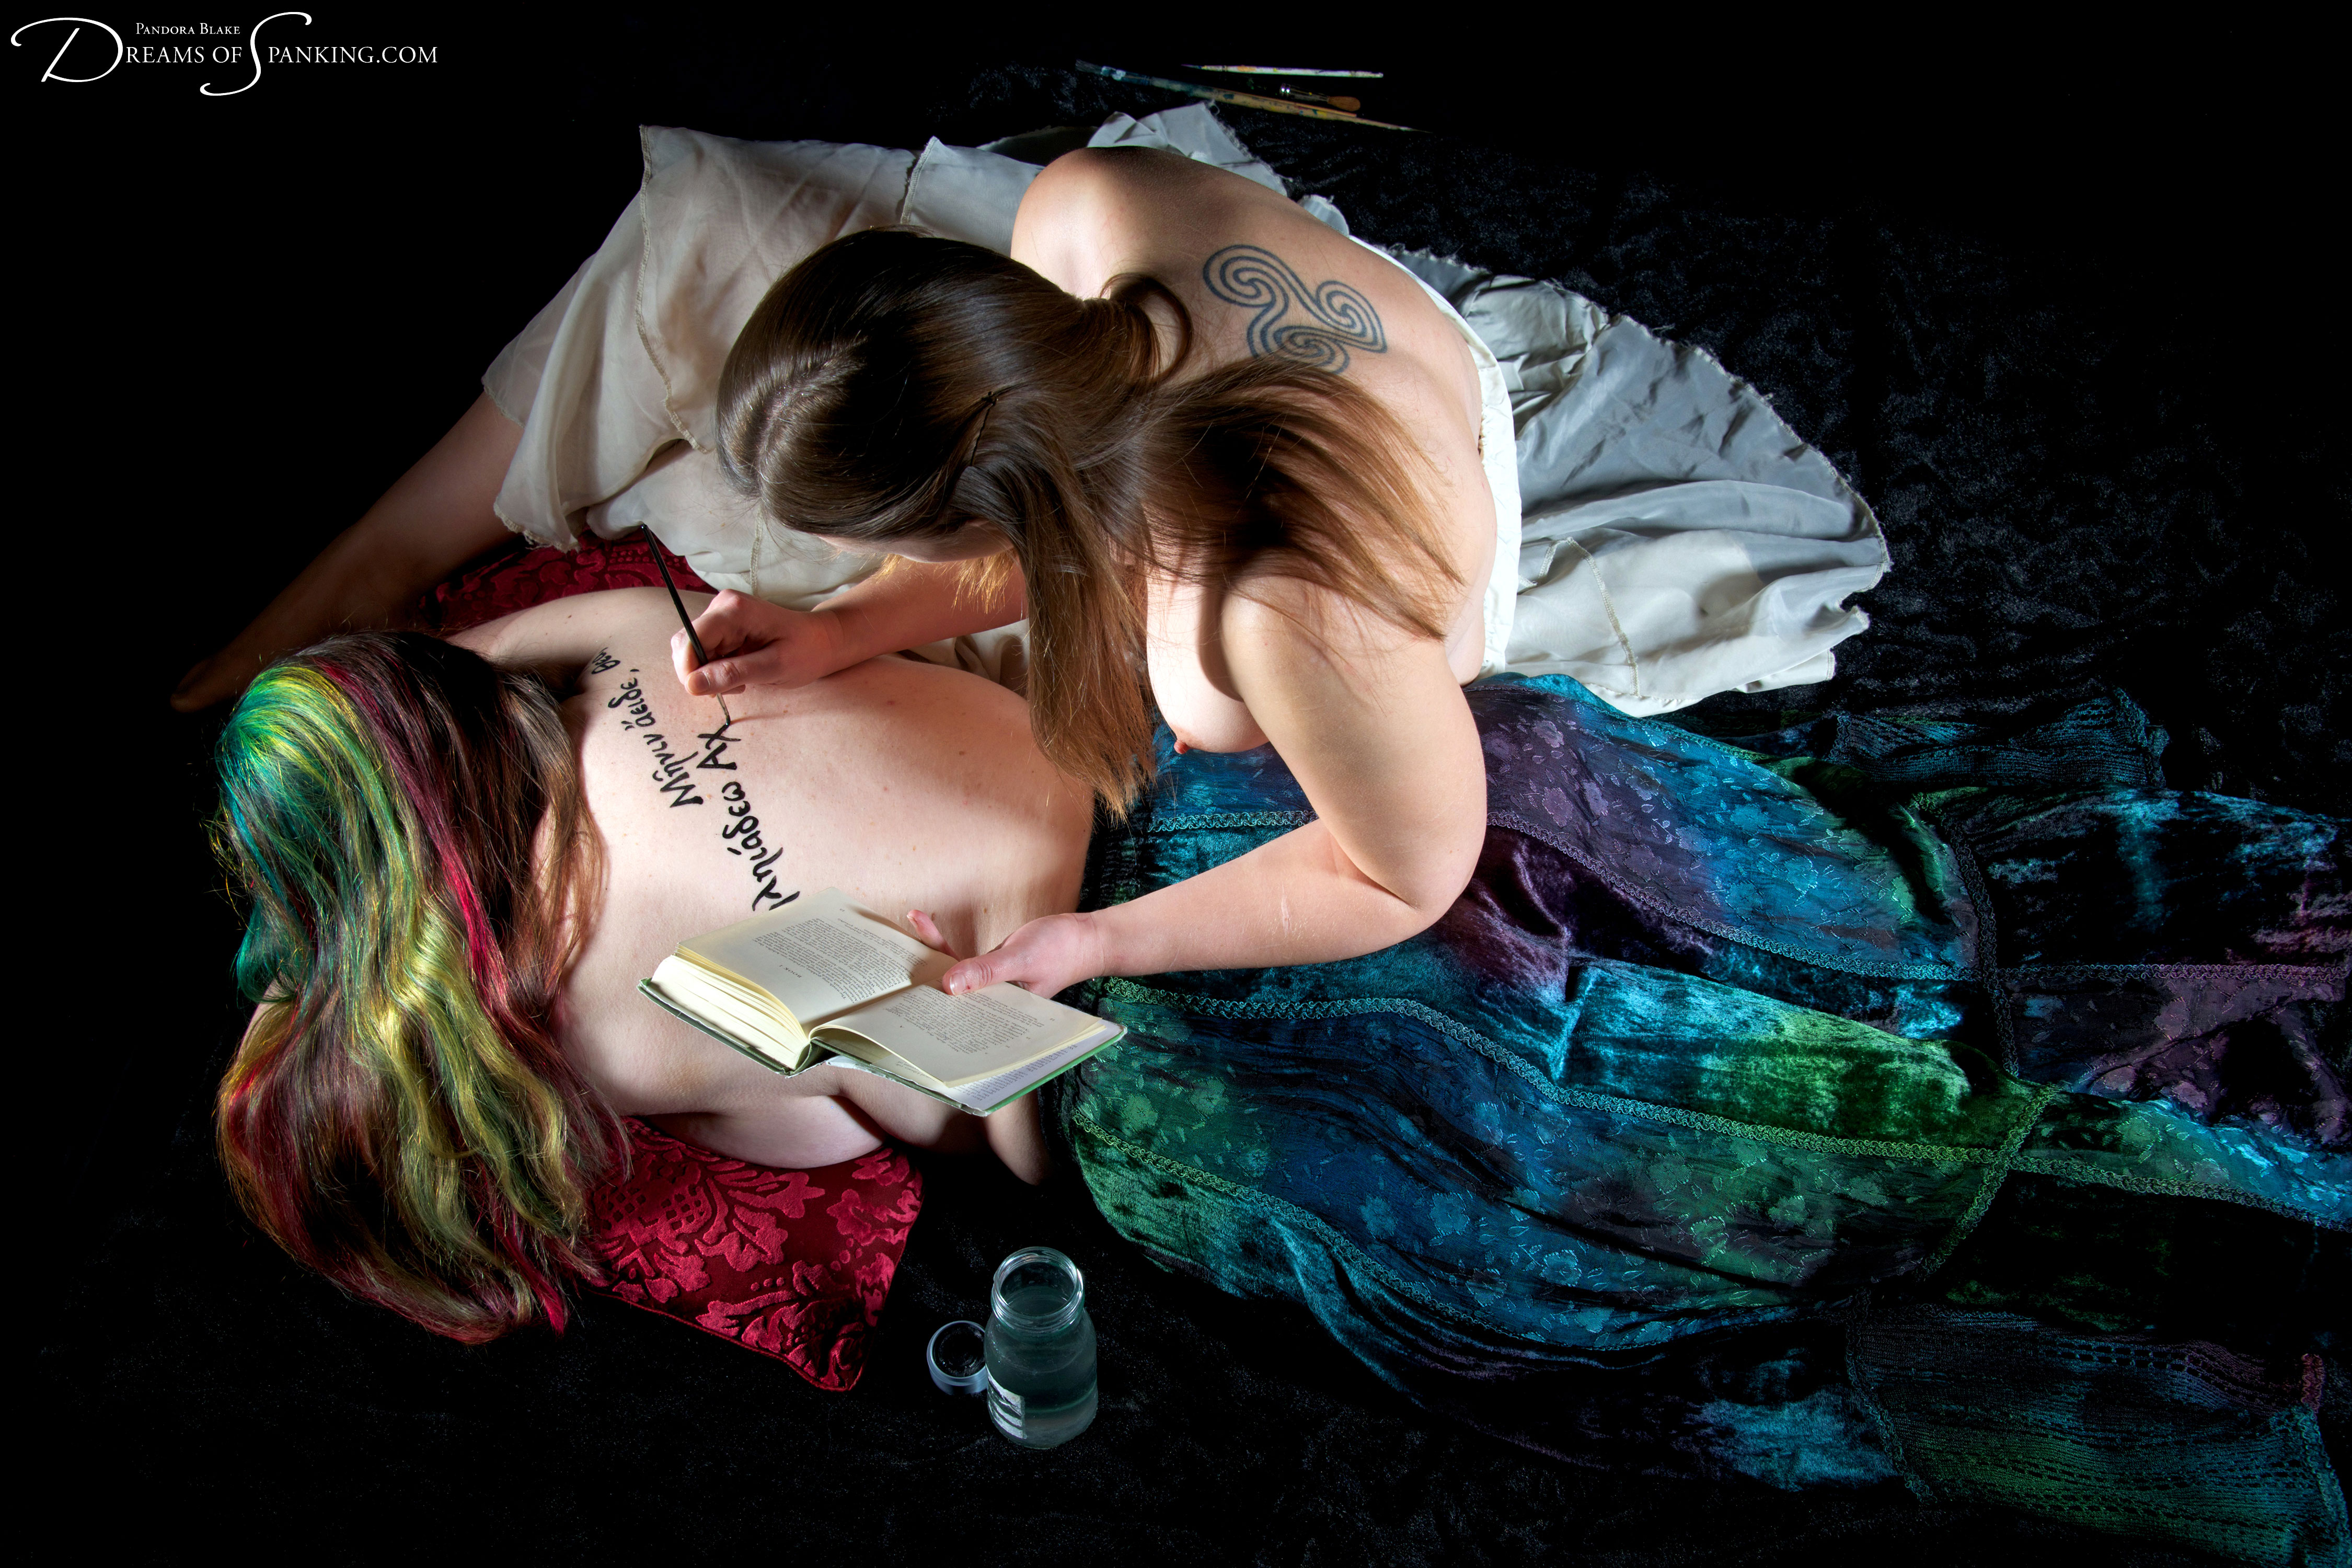 Sing, Muse - a visual poem, a spell woven in ink on skin.